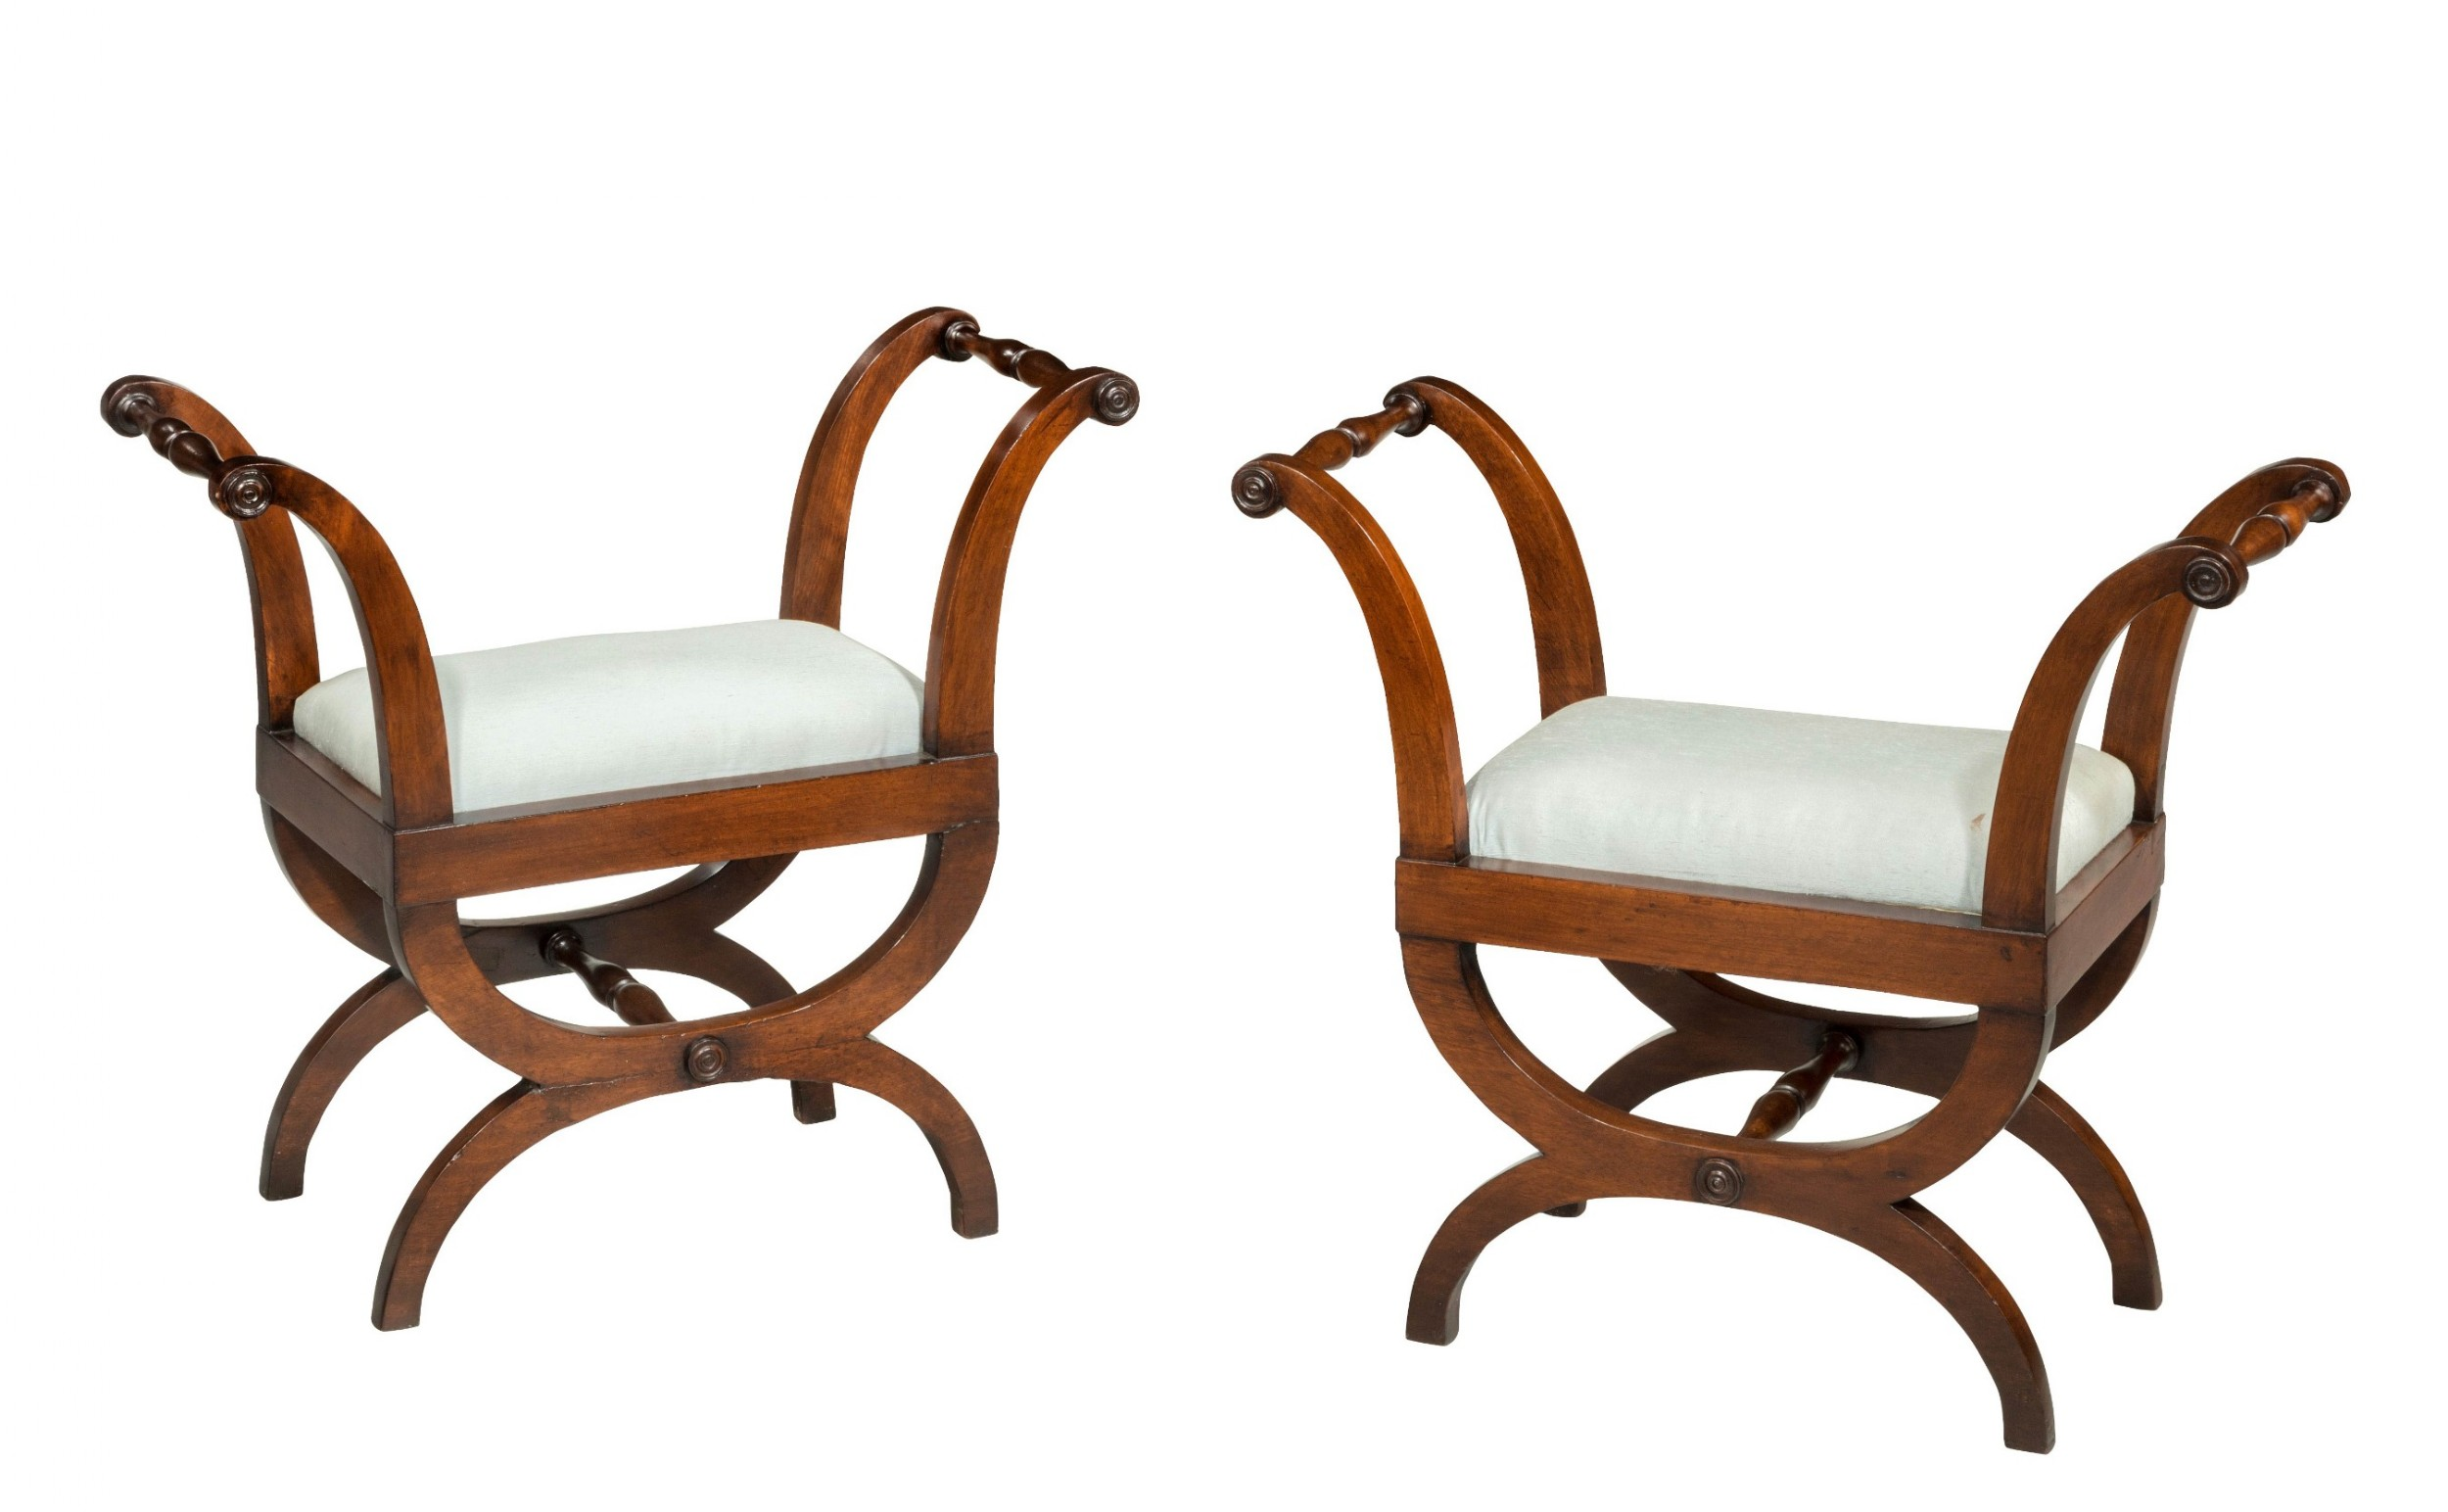 pair of early 19th century mahogany framed stools with flared uprights